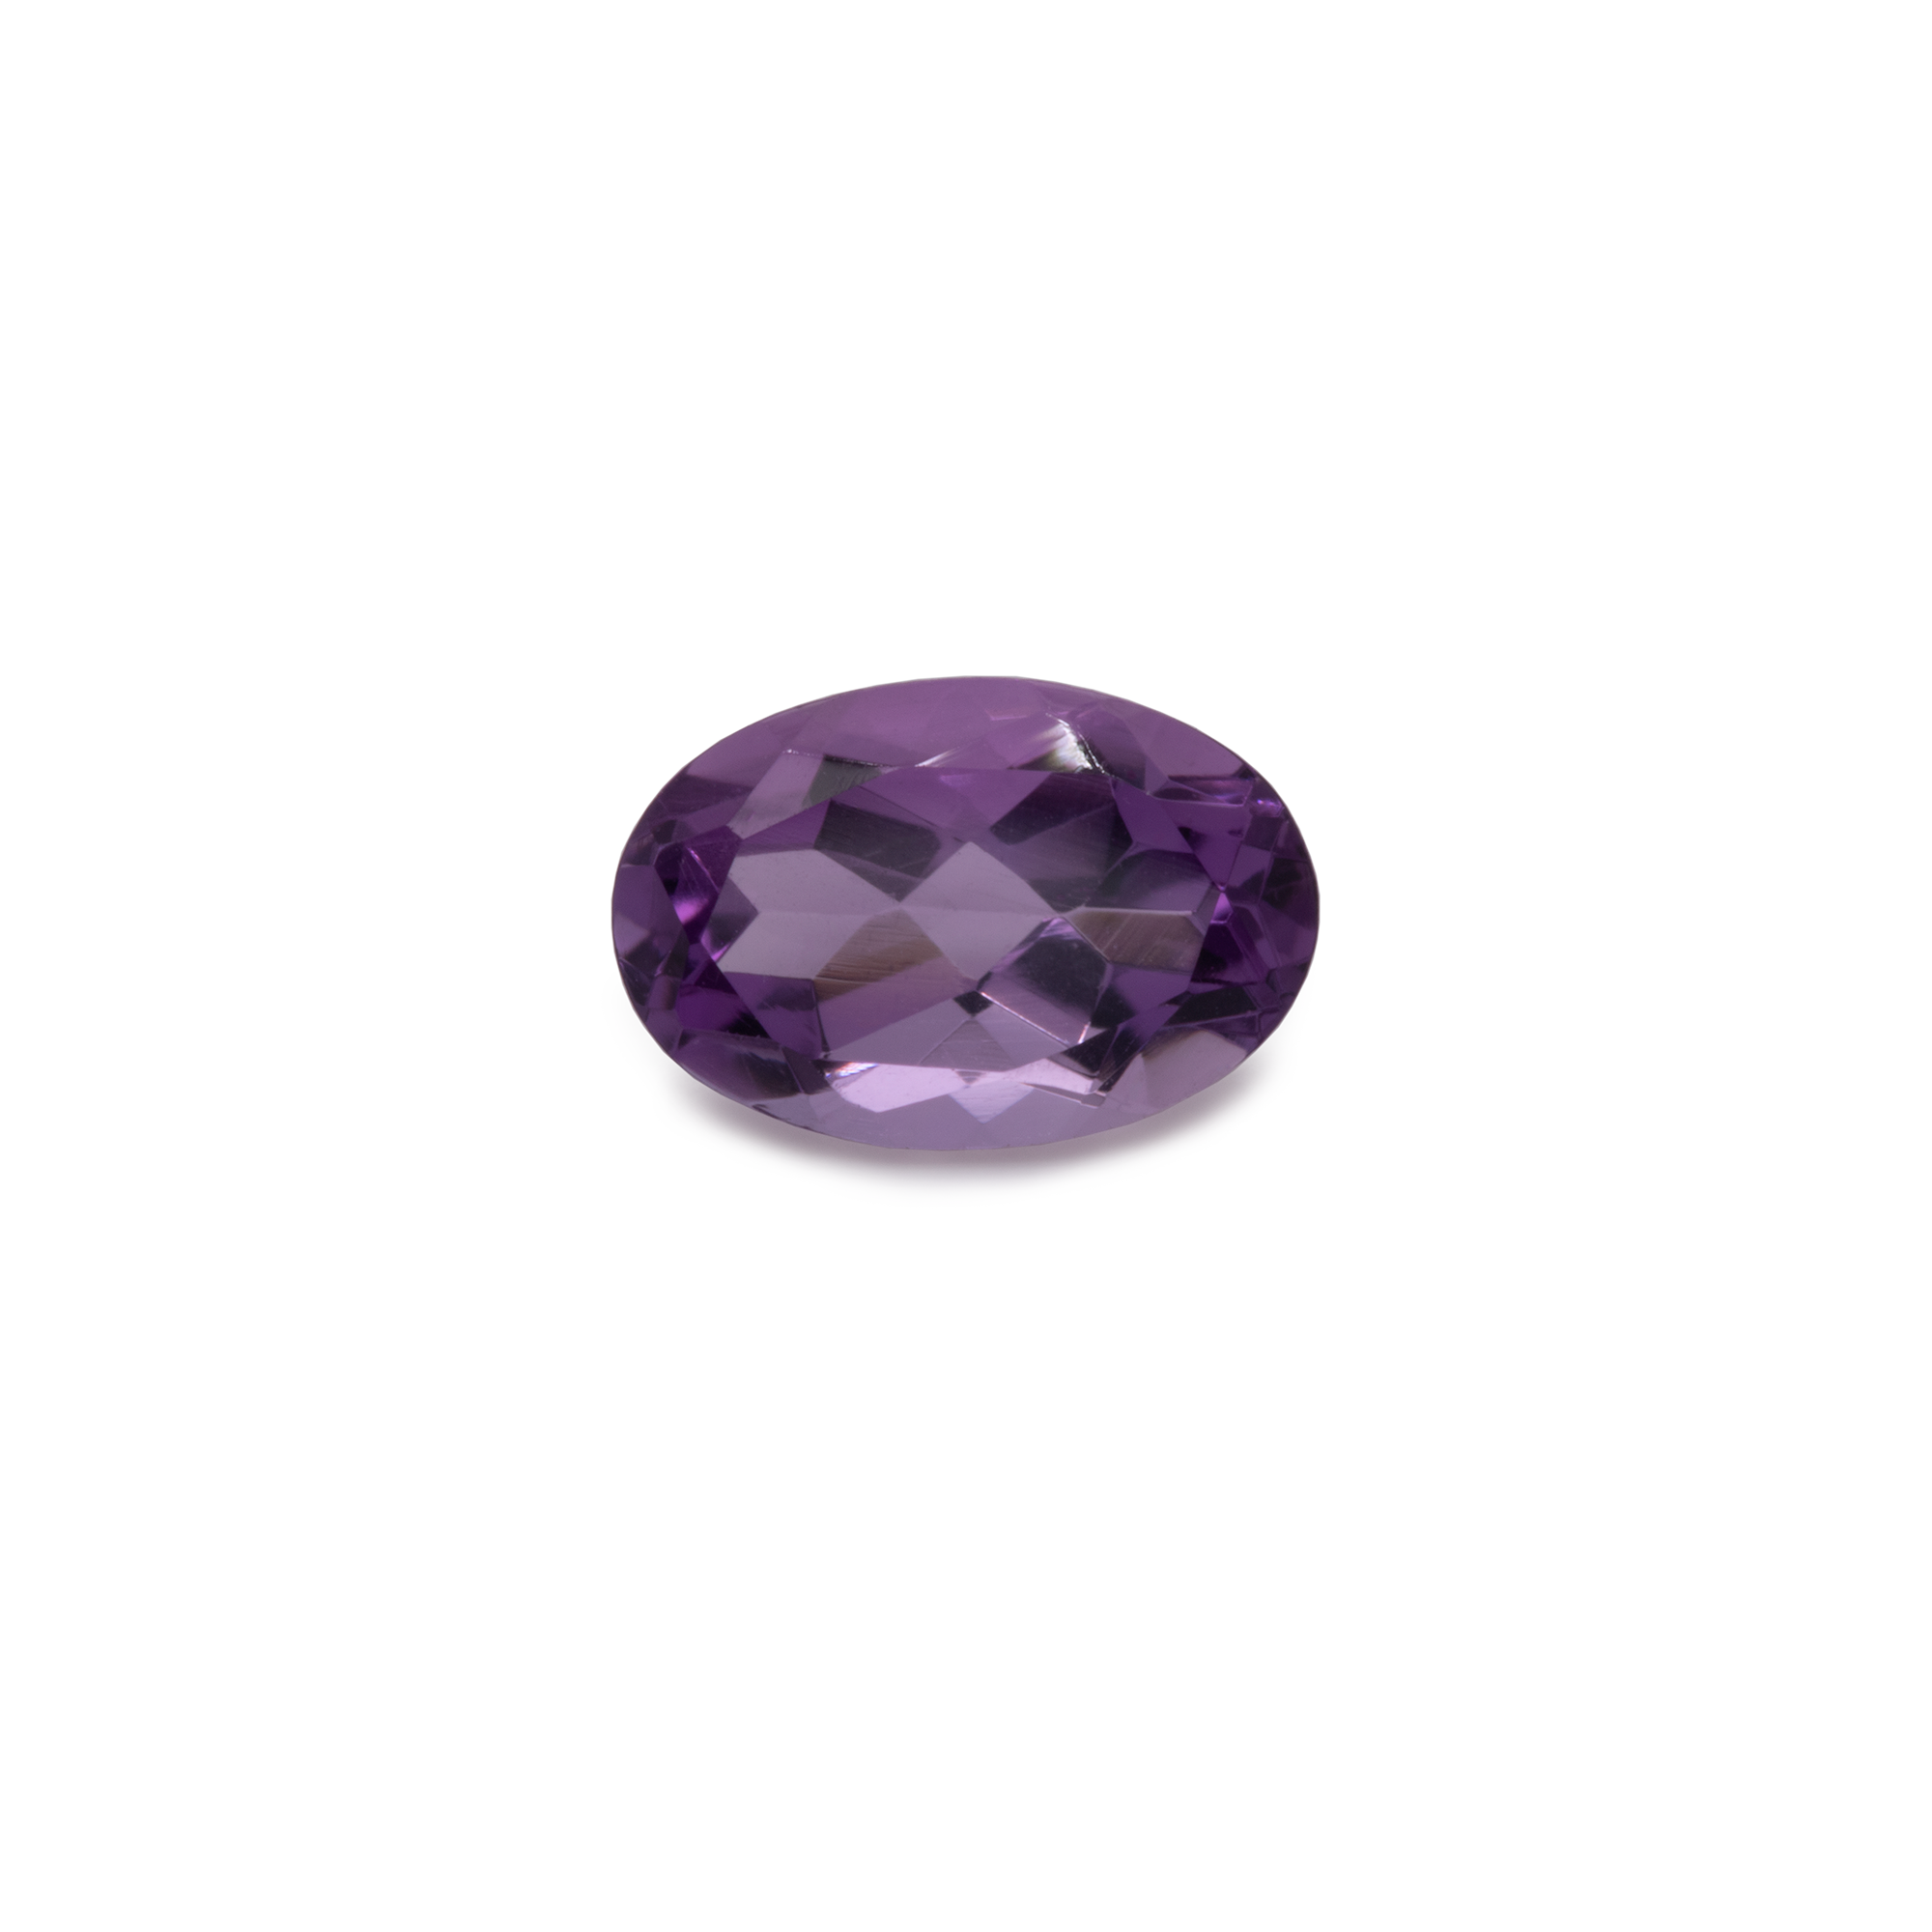 Amethyst - lila, oval, 6x4 mm, 0,48 cts, Nr. AMY80001